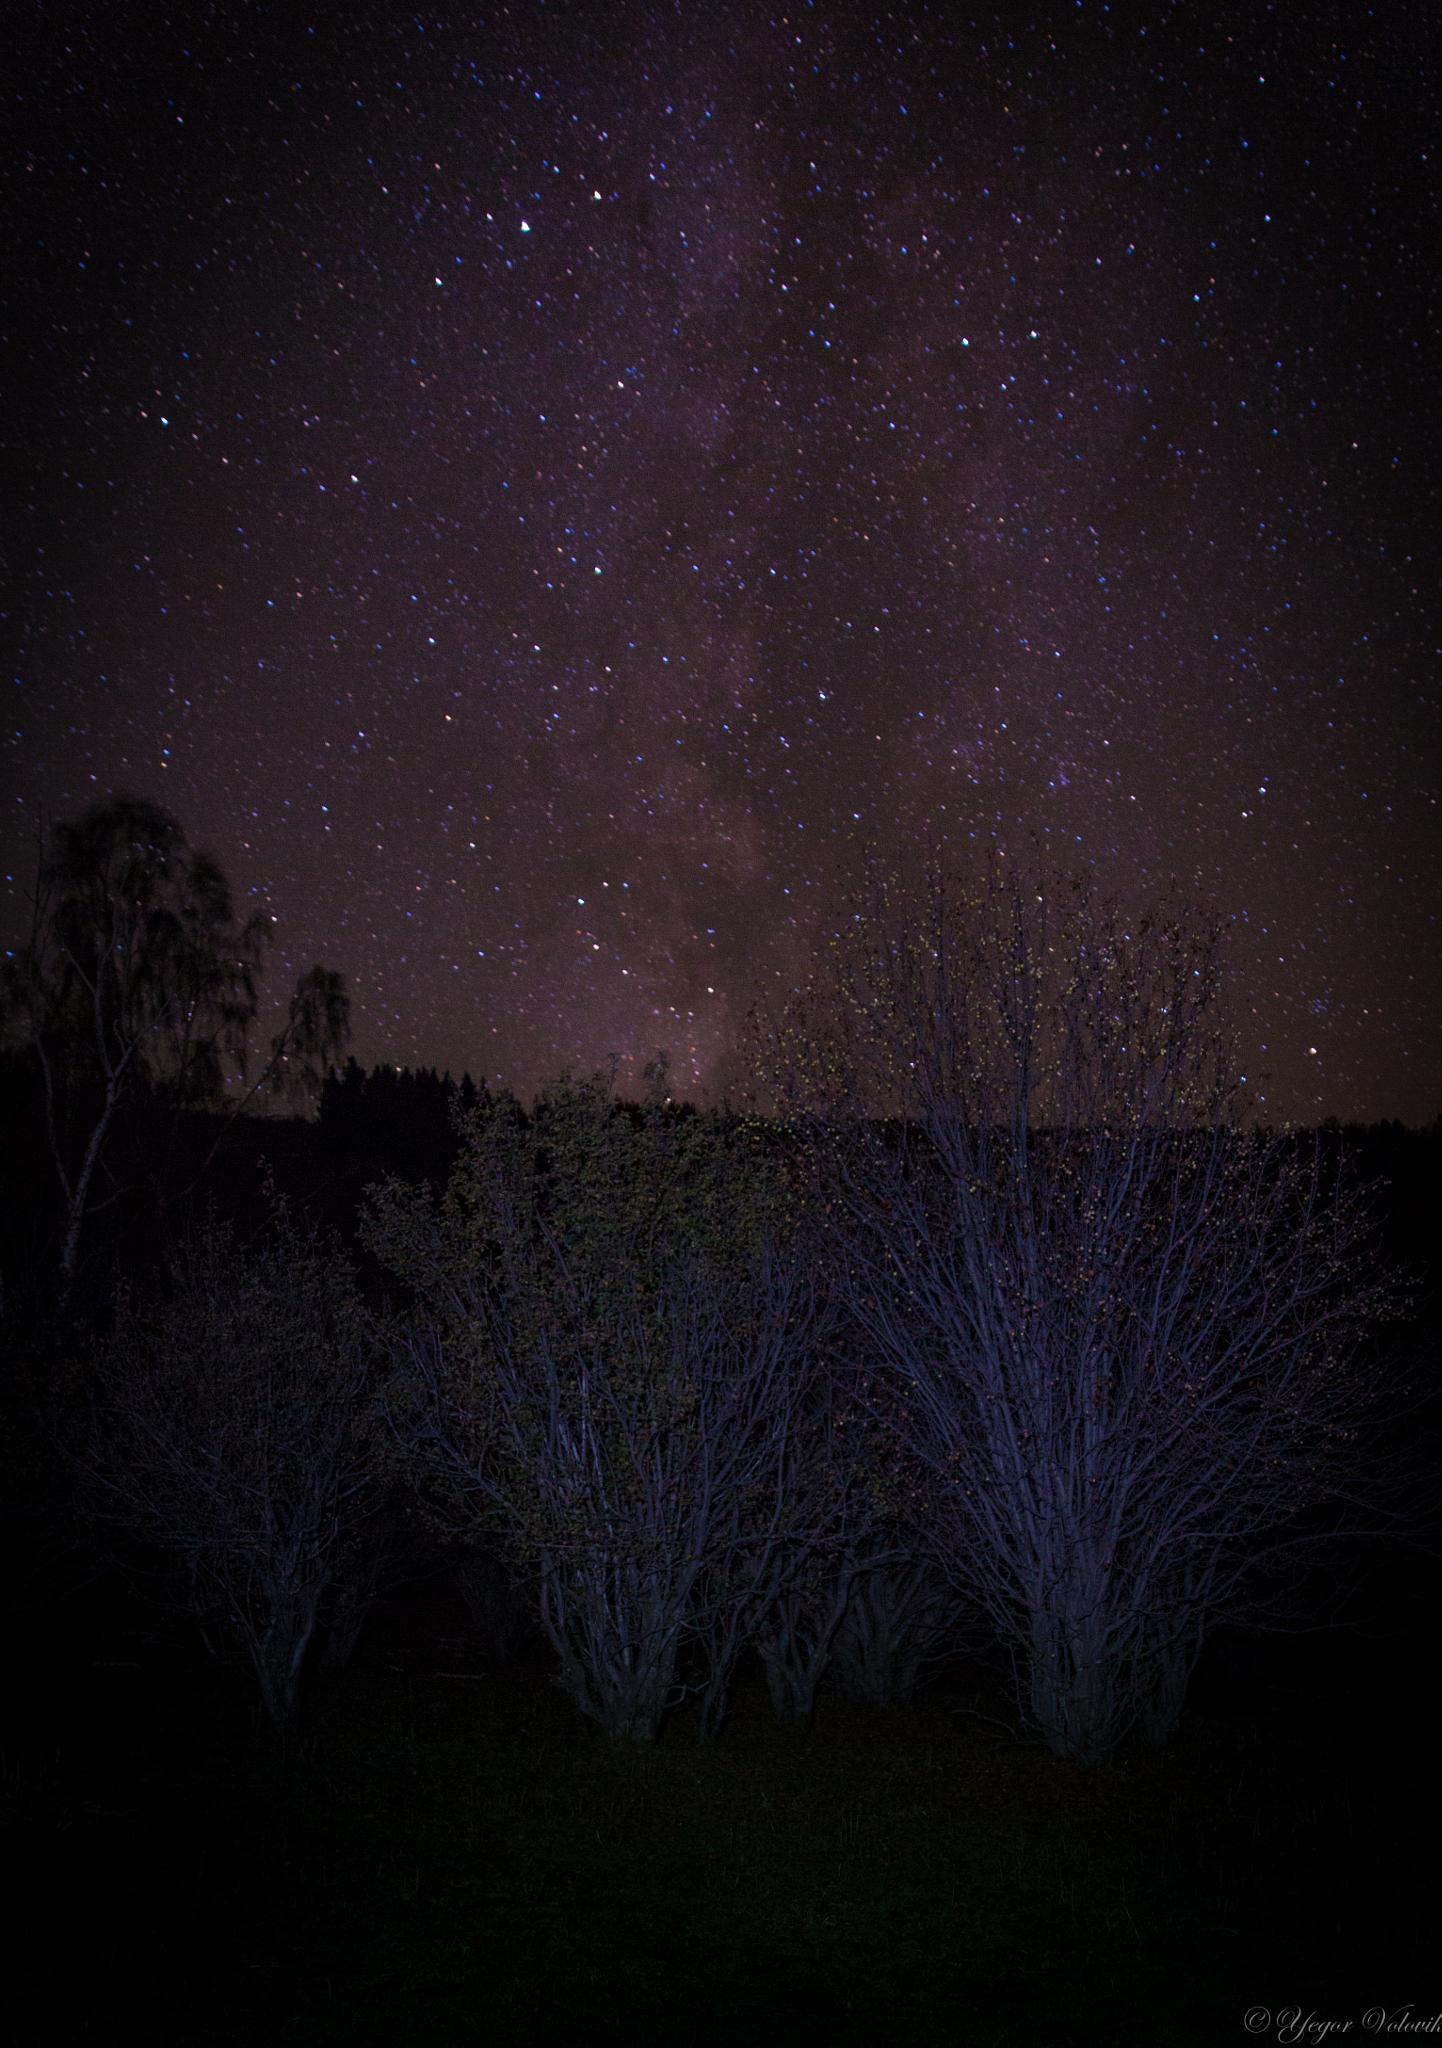 The Milky Way. by Yegor & Tanya